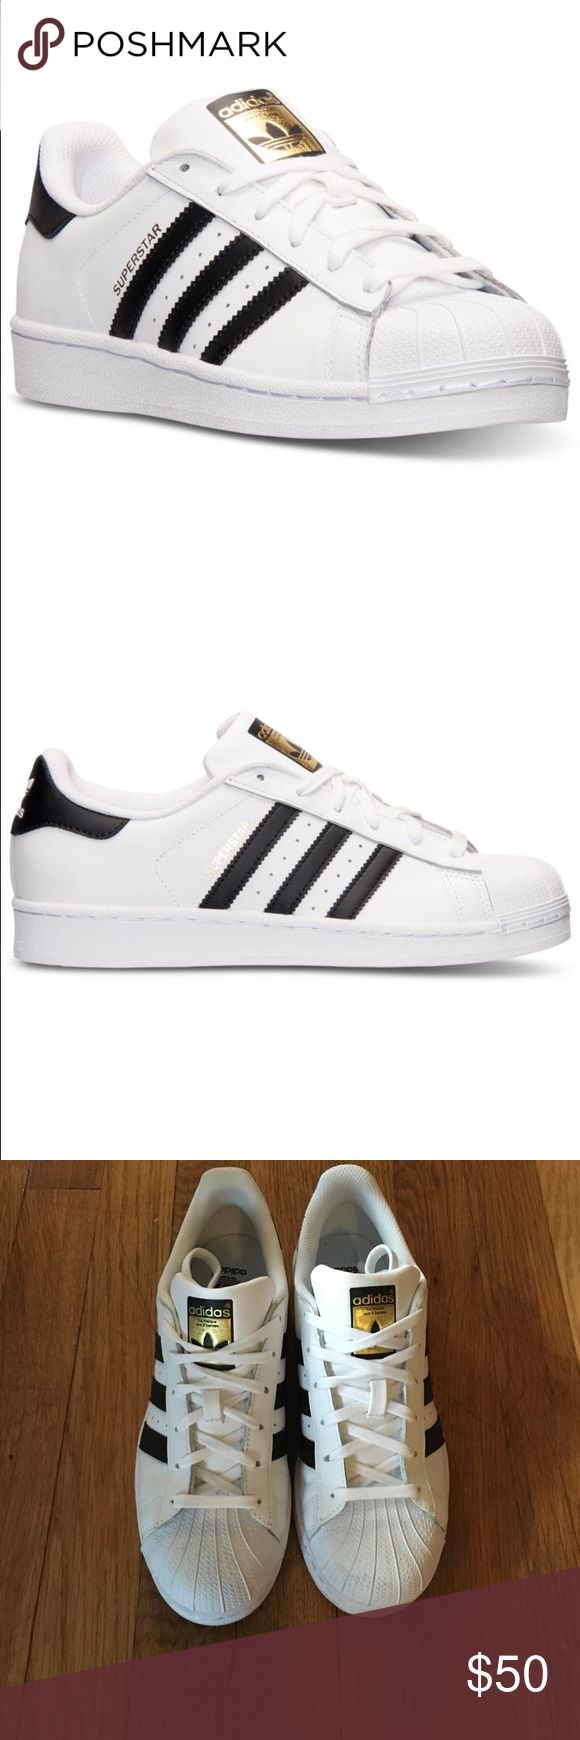 Adidas Superstar shoes Adidas Superstar shoes. Great condition. Only worn once. Size is kids 6 1/2 but fits an 8 1/2 adult. Adidas Shoes Sneakers